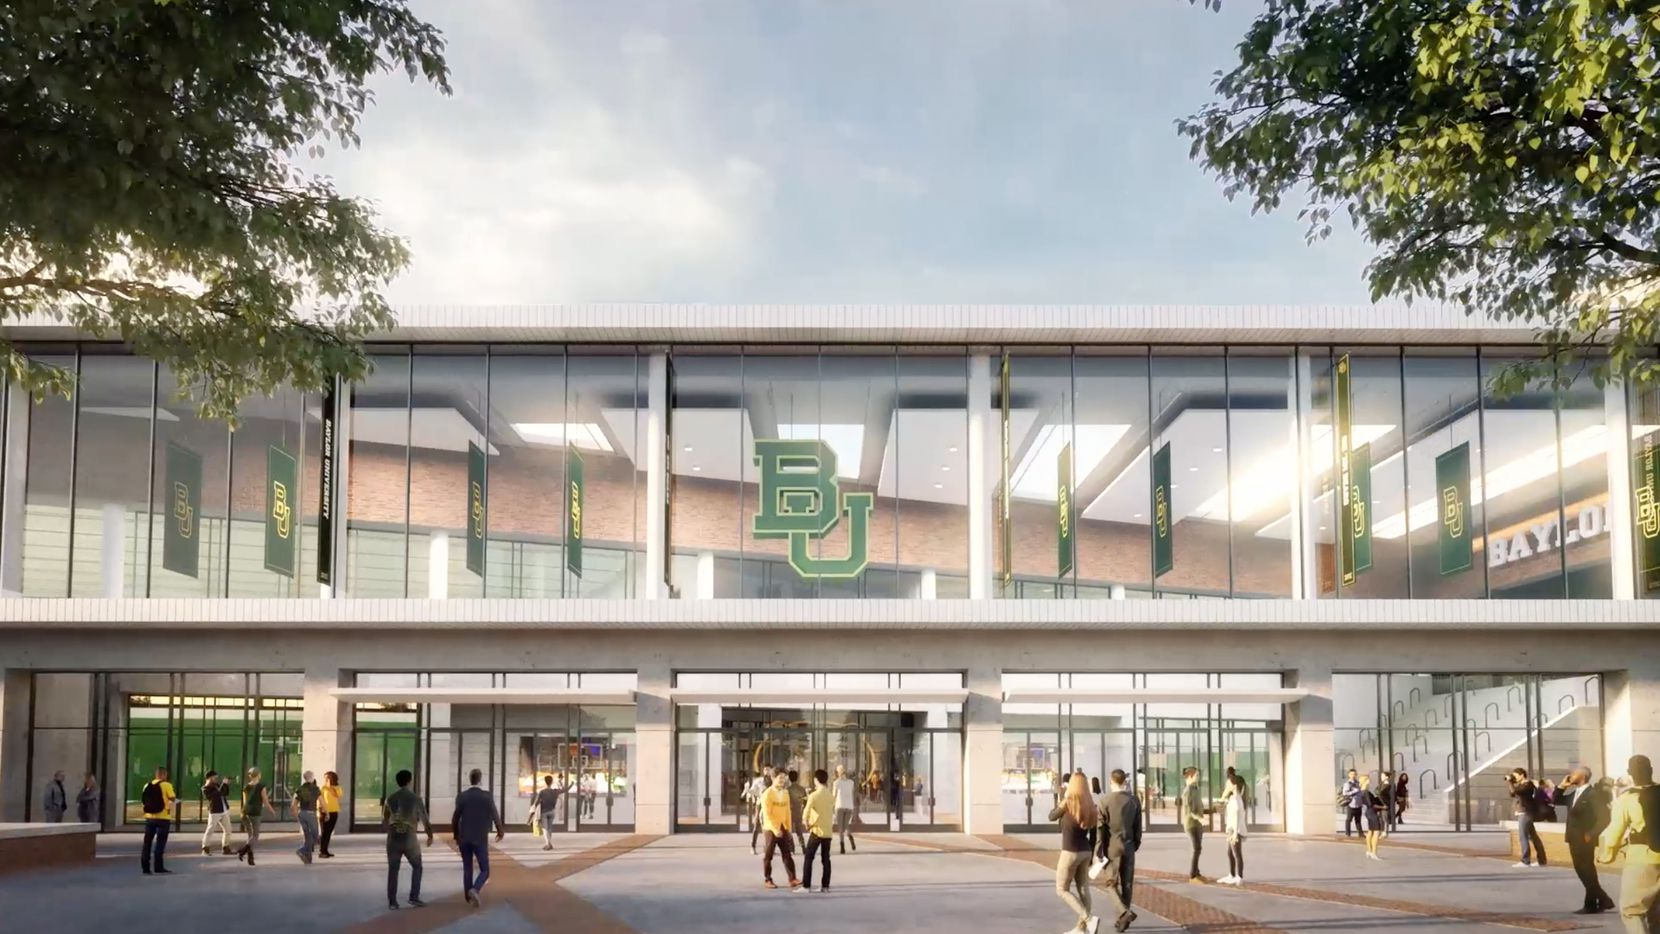 Rendering of Baylor's new basketball arena.